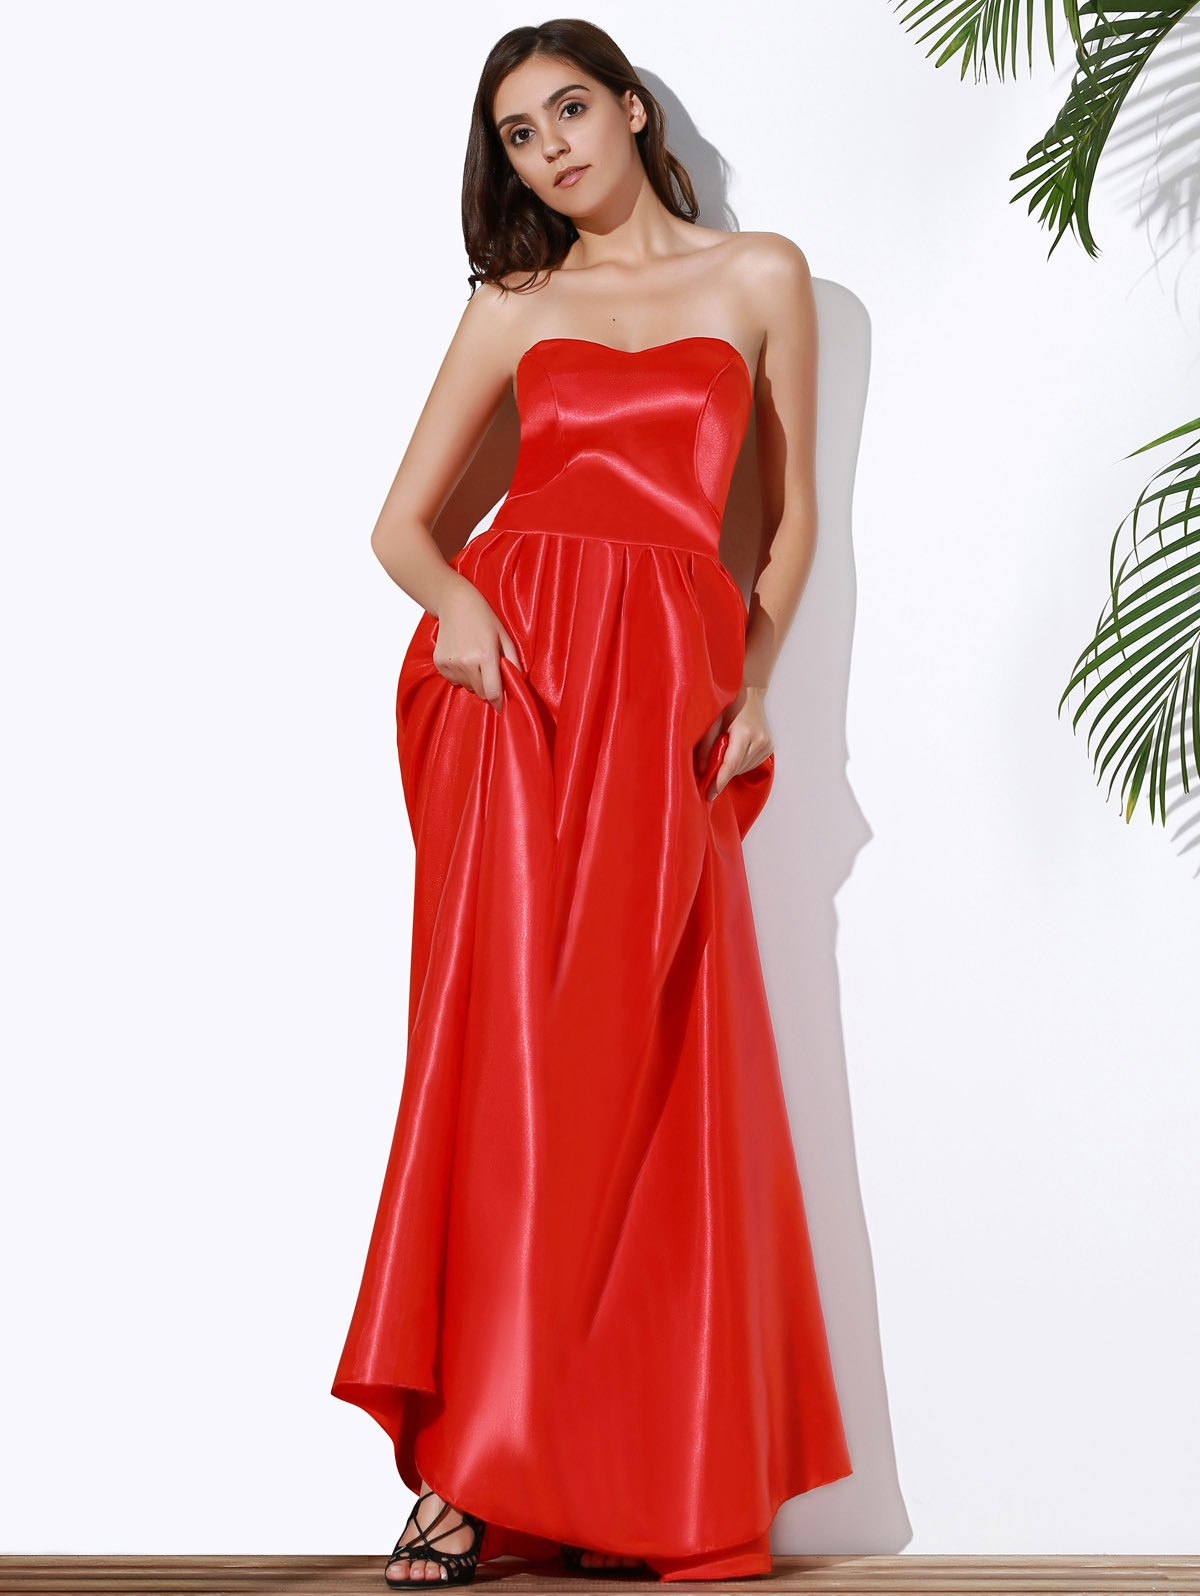 Red S Fashion Strapless Red Maxi Dress For Women | RoseGal.com